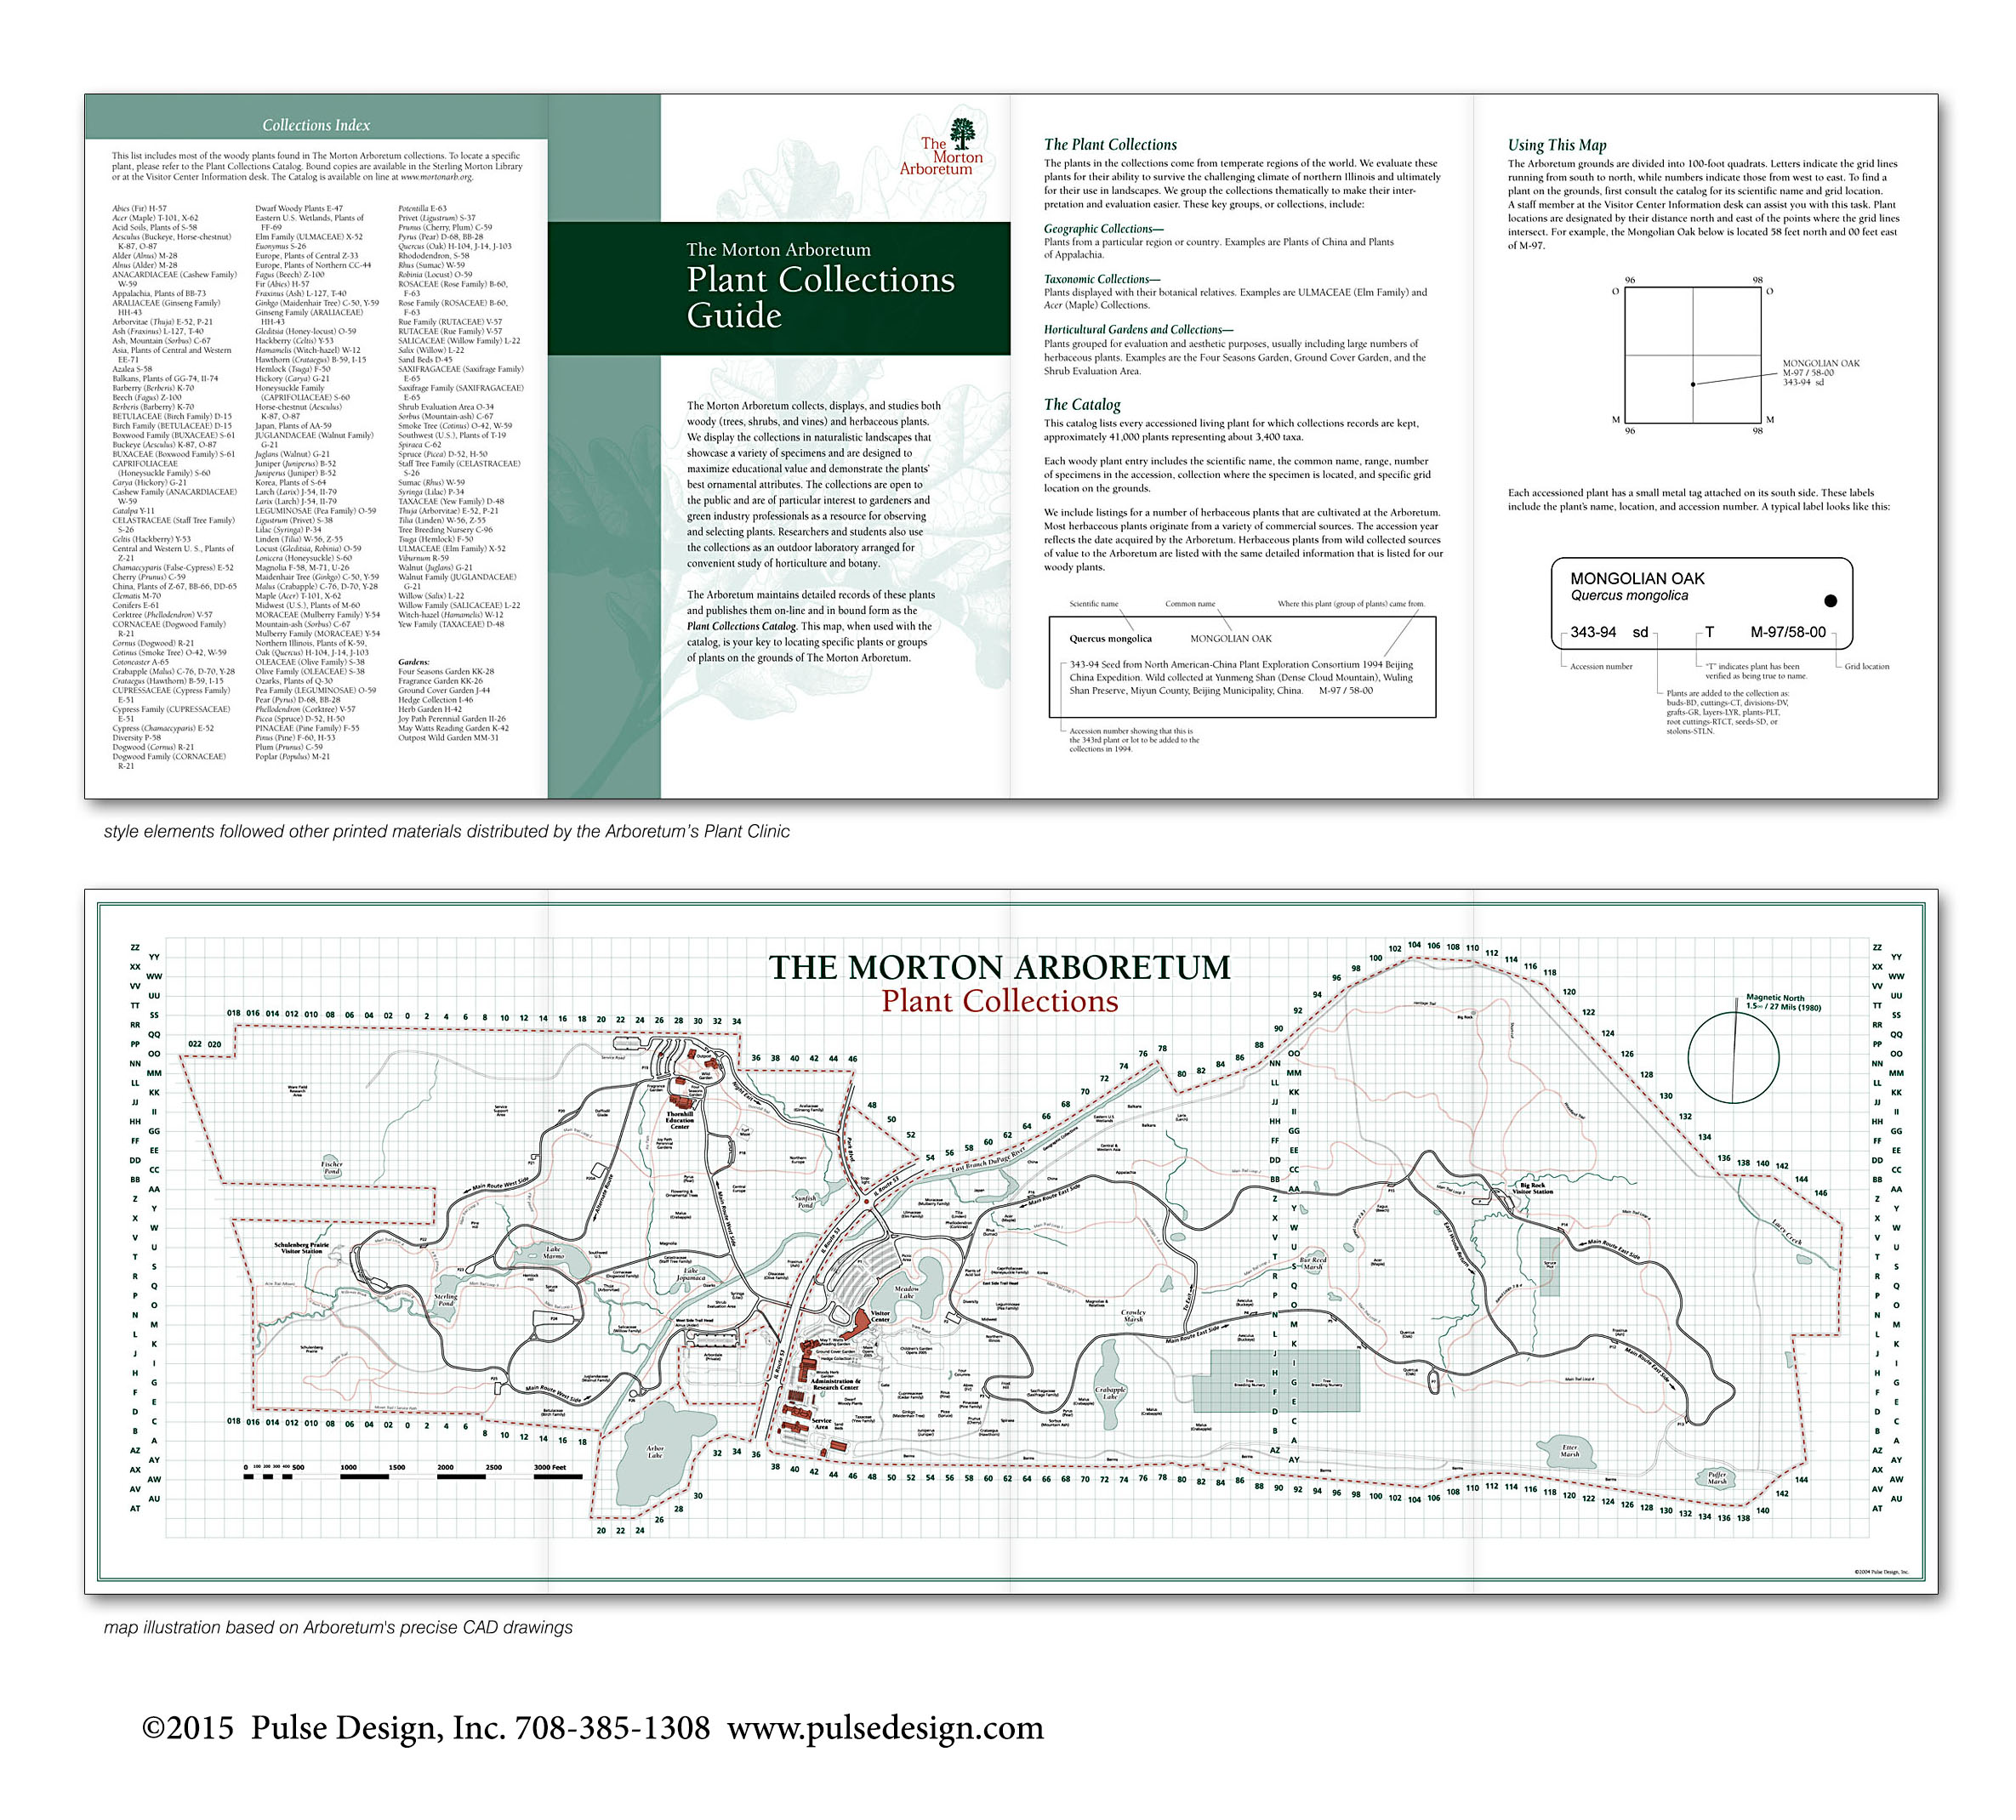 Morton-Arboretum-Brochure-Collections-Map-Lg-Pusle-Design-Inc.jpg